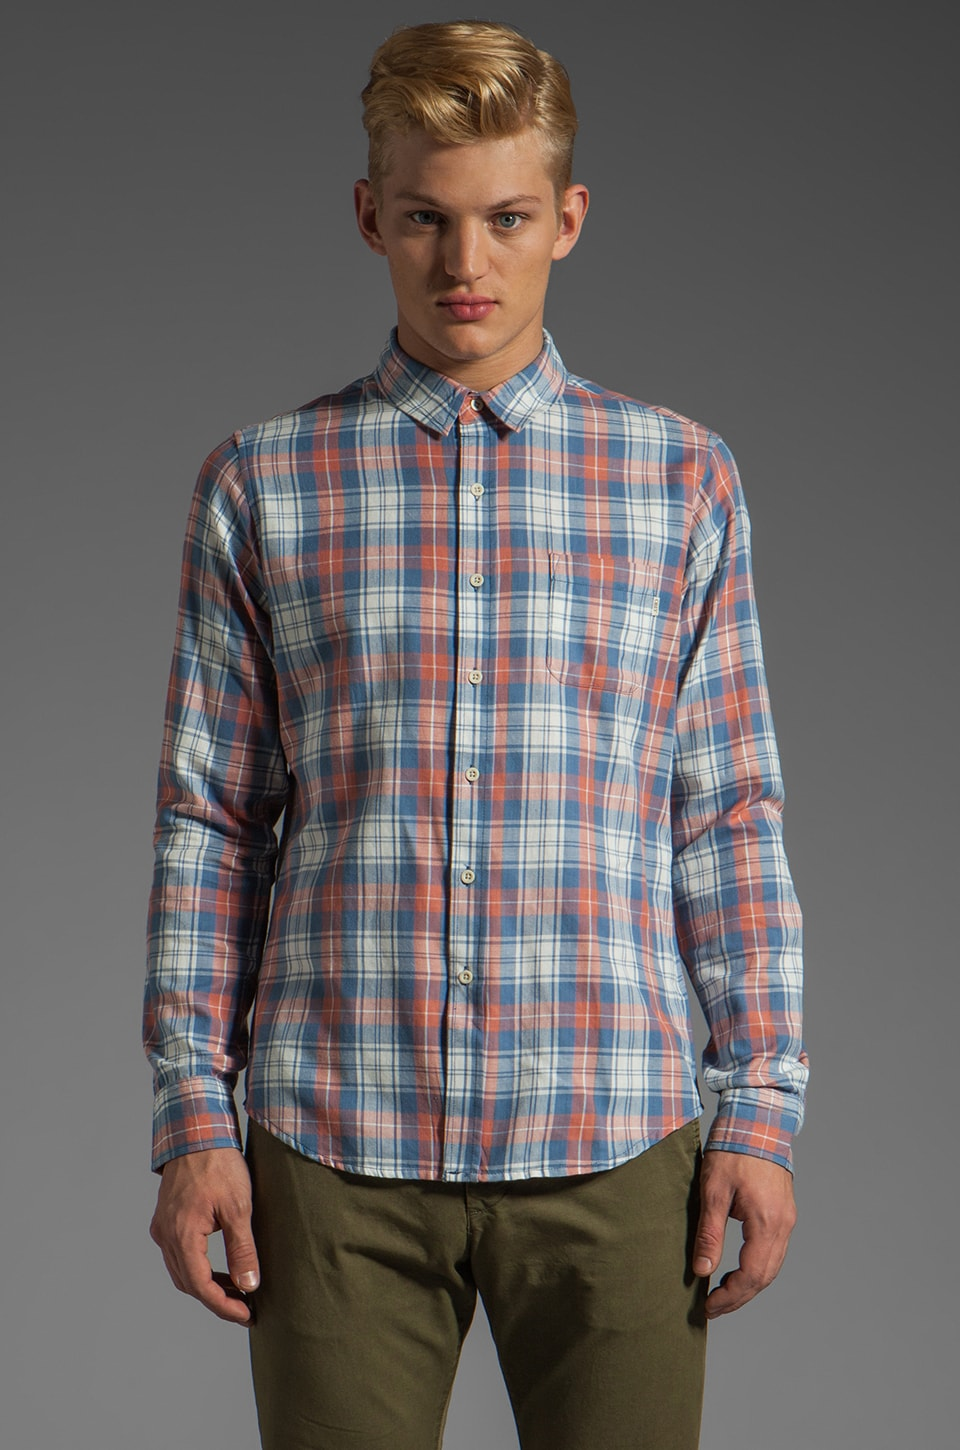 Obey Holten Shirt in Blue